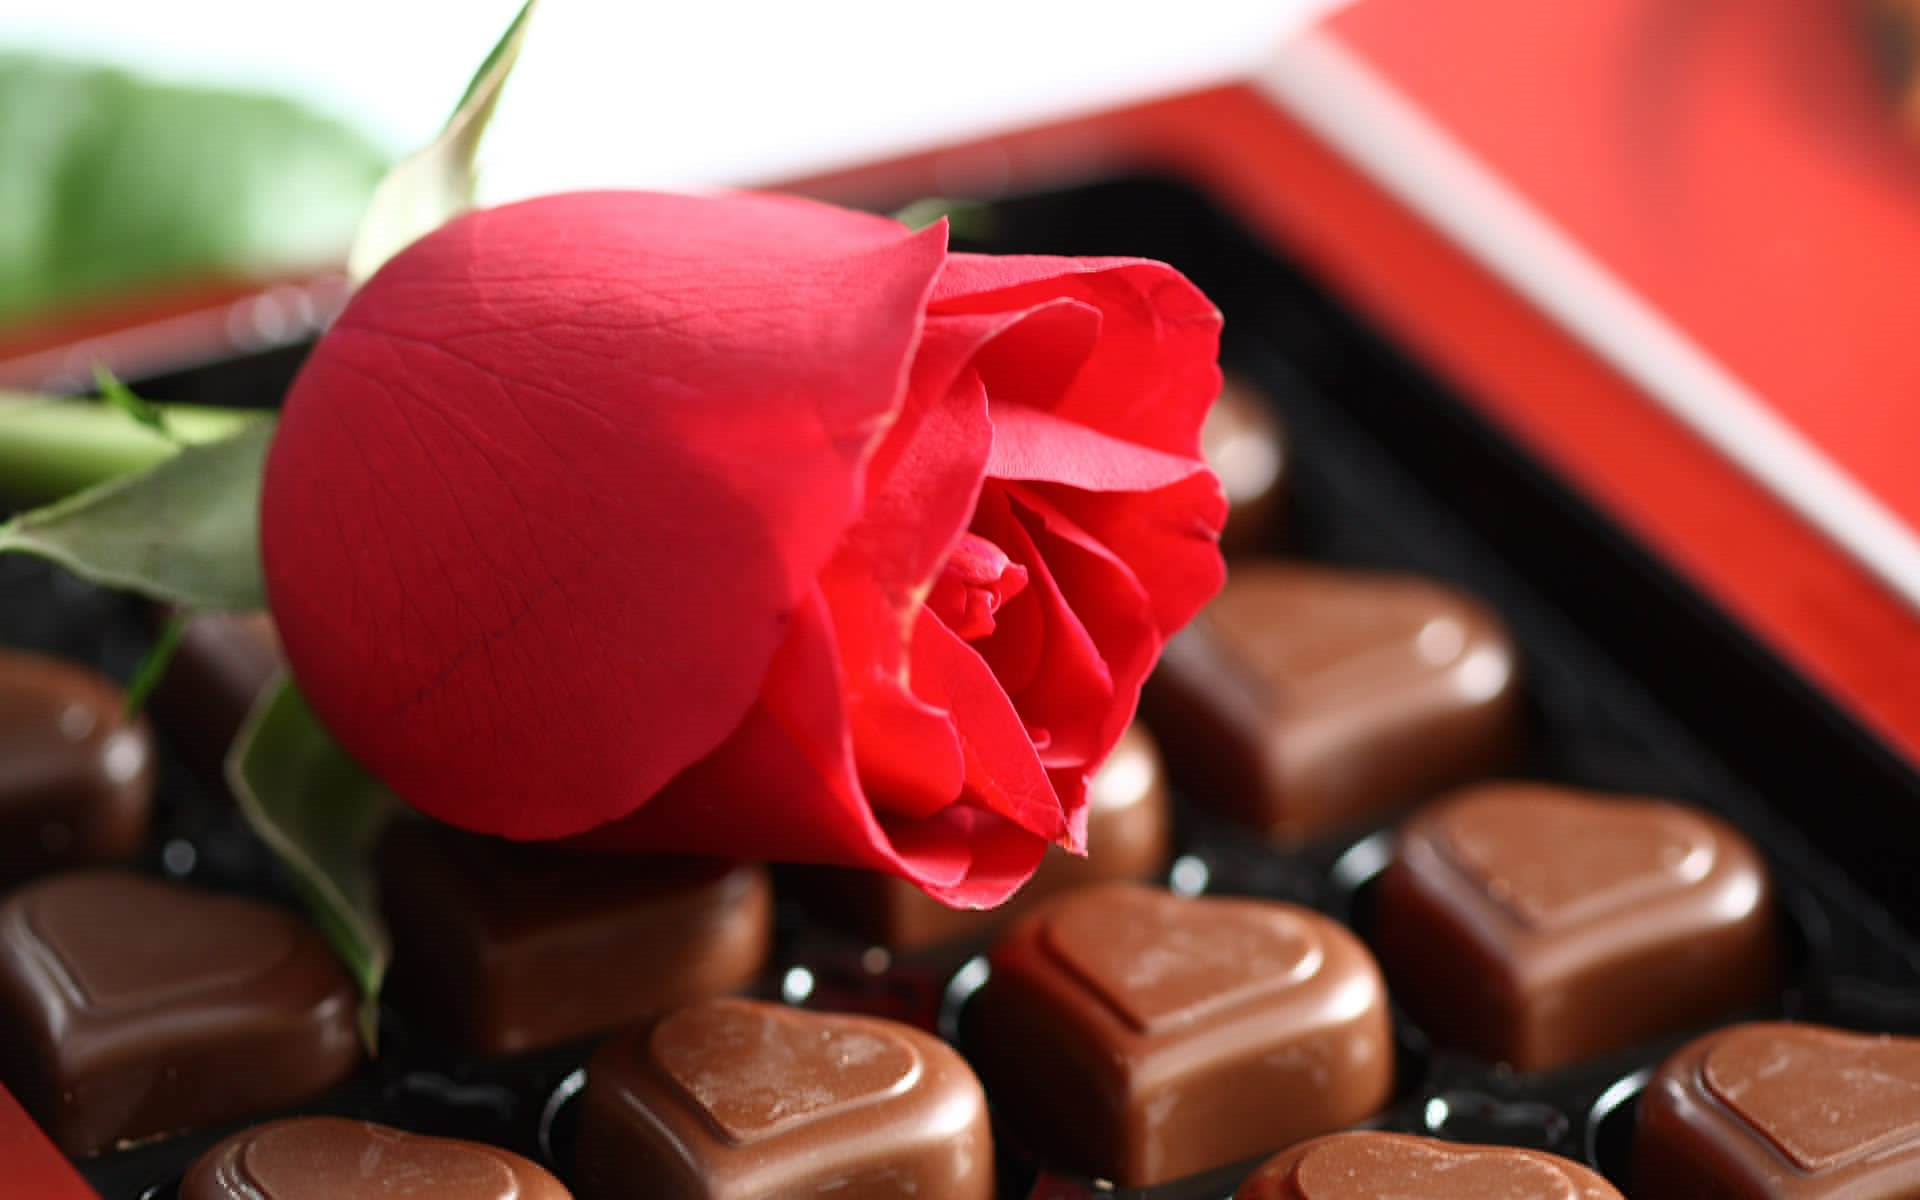 Wallpaper Red Rose And Chocolate Candy 1920x1200 HD Picture Image